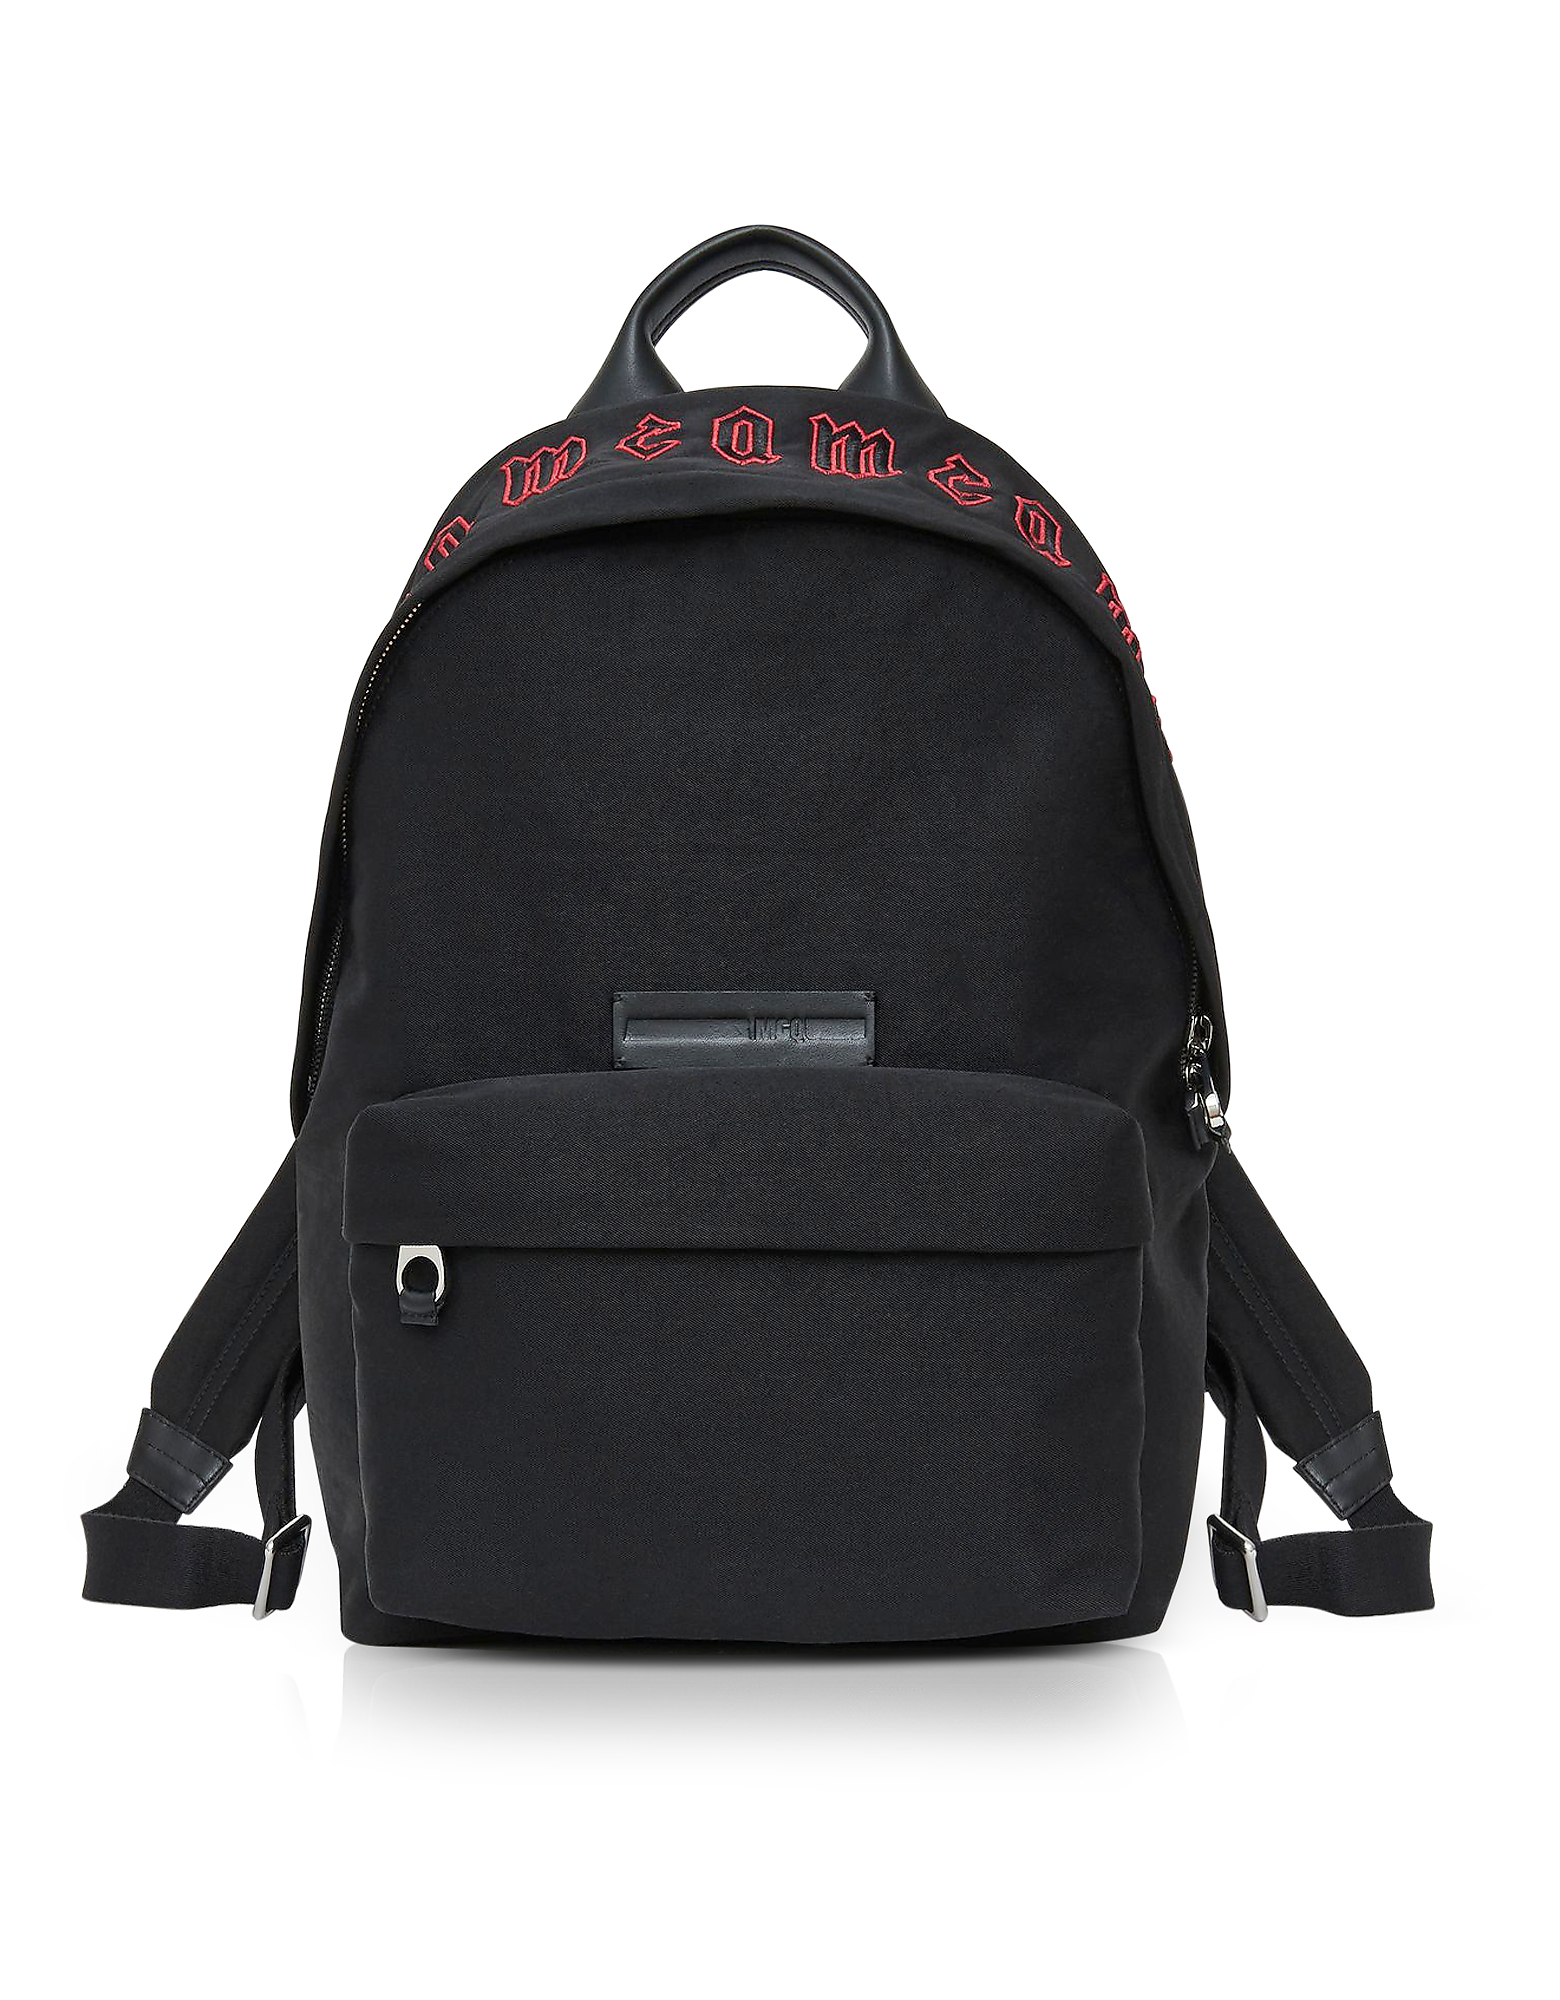 McQ Alexander McQueen Backpacks, McQ Red Gothic Repeat Black Cotton Classic Backpack